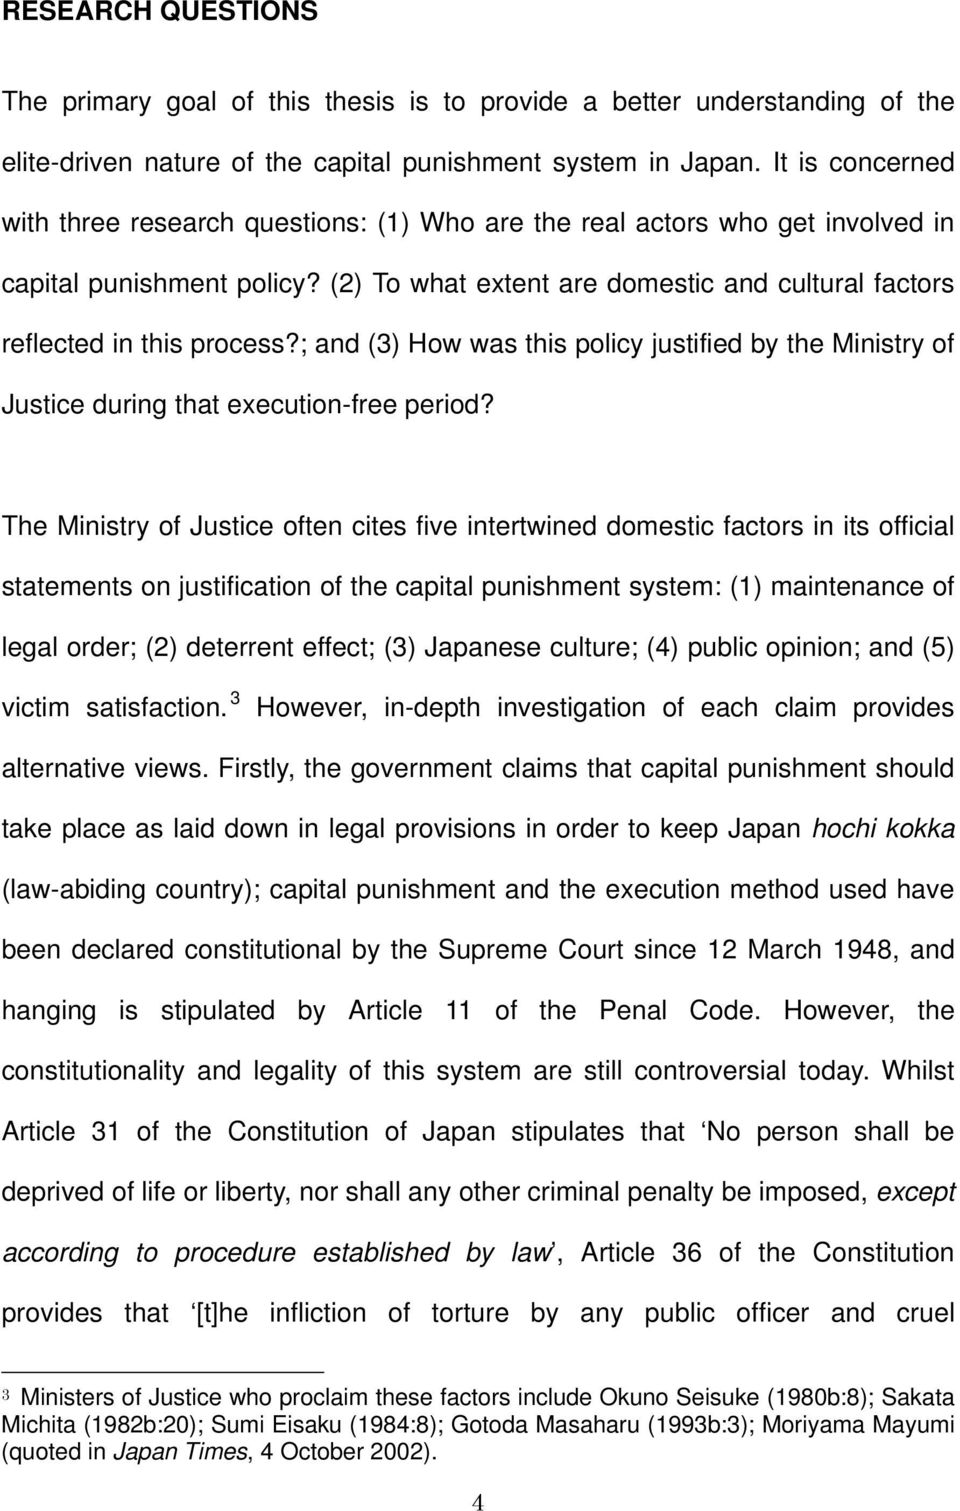 (2) To what extent are domestic and cultural factors reflected in this process?; and (3) How was this policy justified by the Ministry of Justice during that execution-free period?